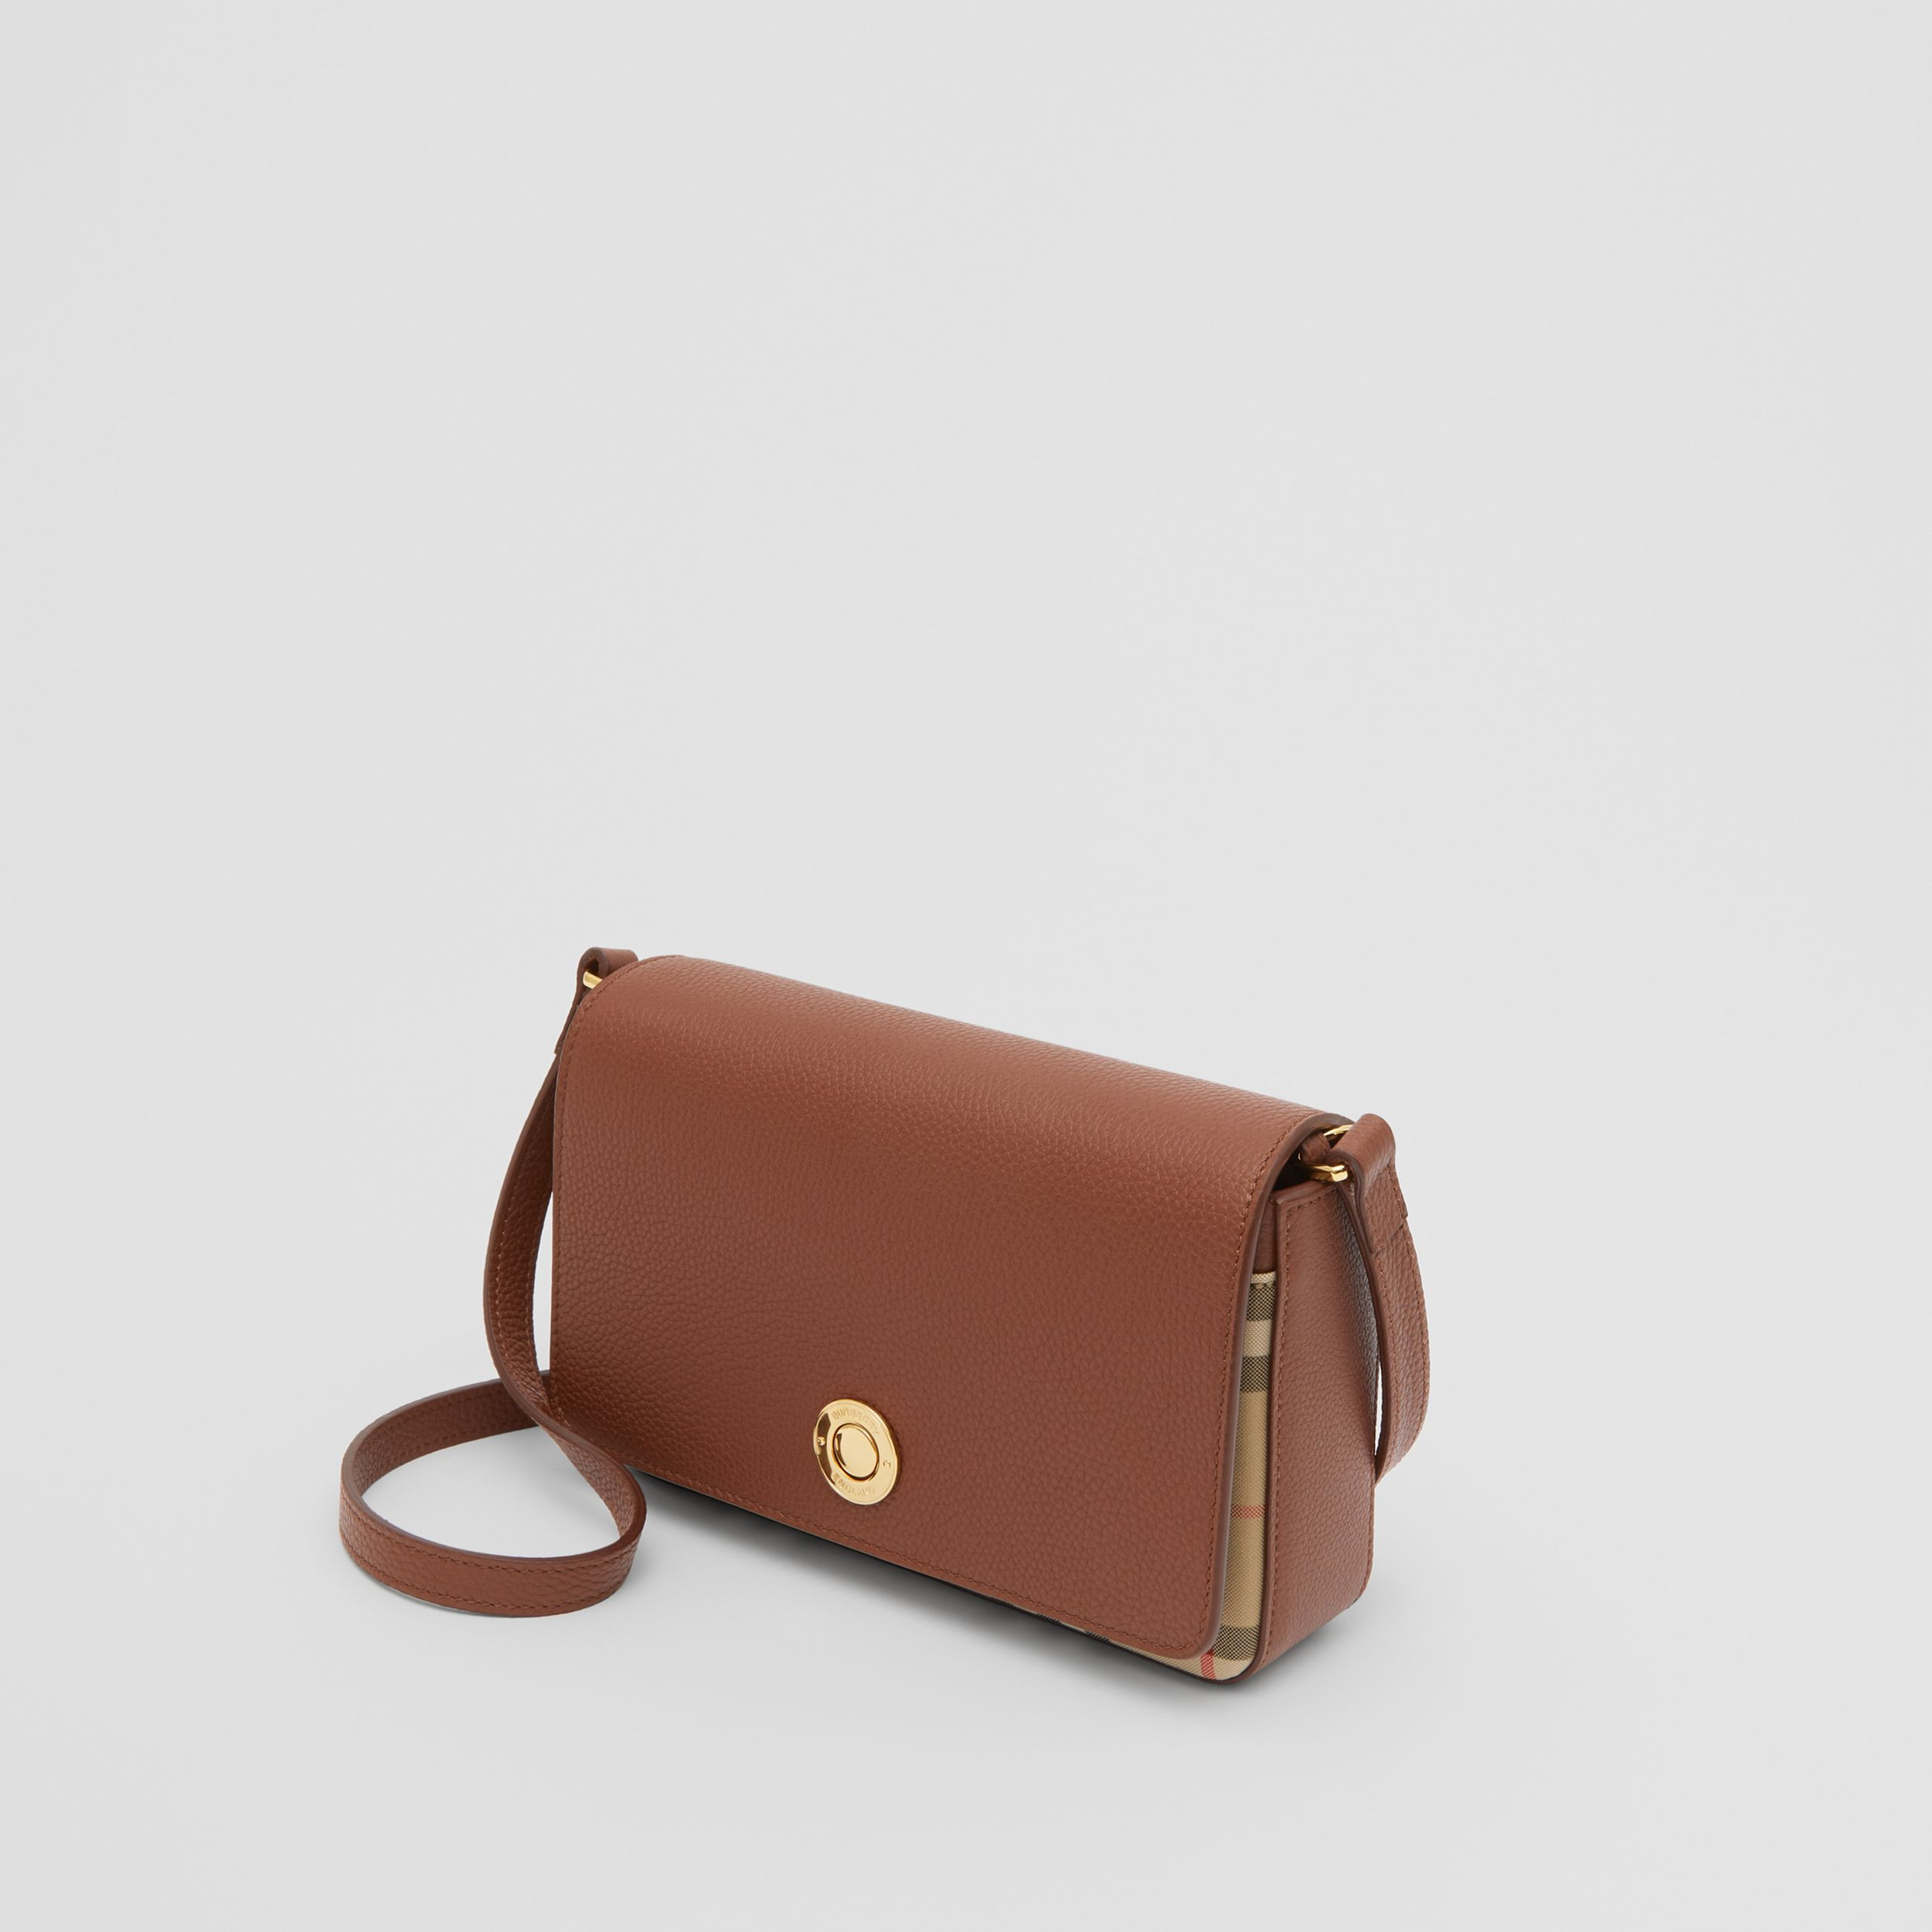 Small Leather and Vintage Check Crossbody Bag in Tan - Women | Burberry Australia - 4